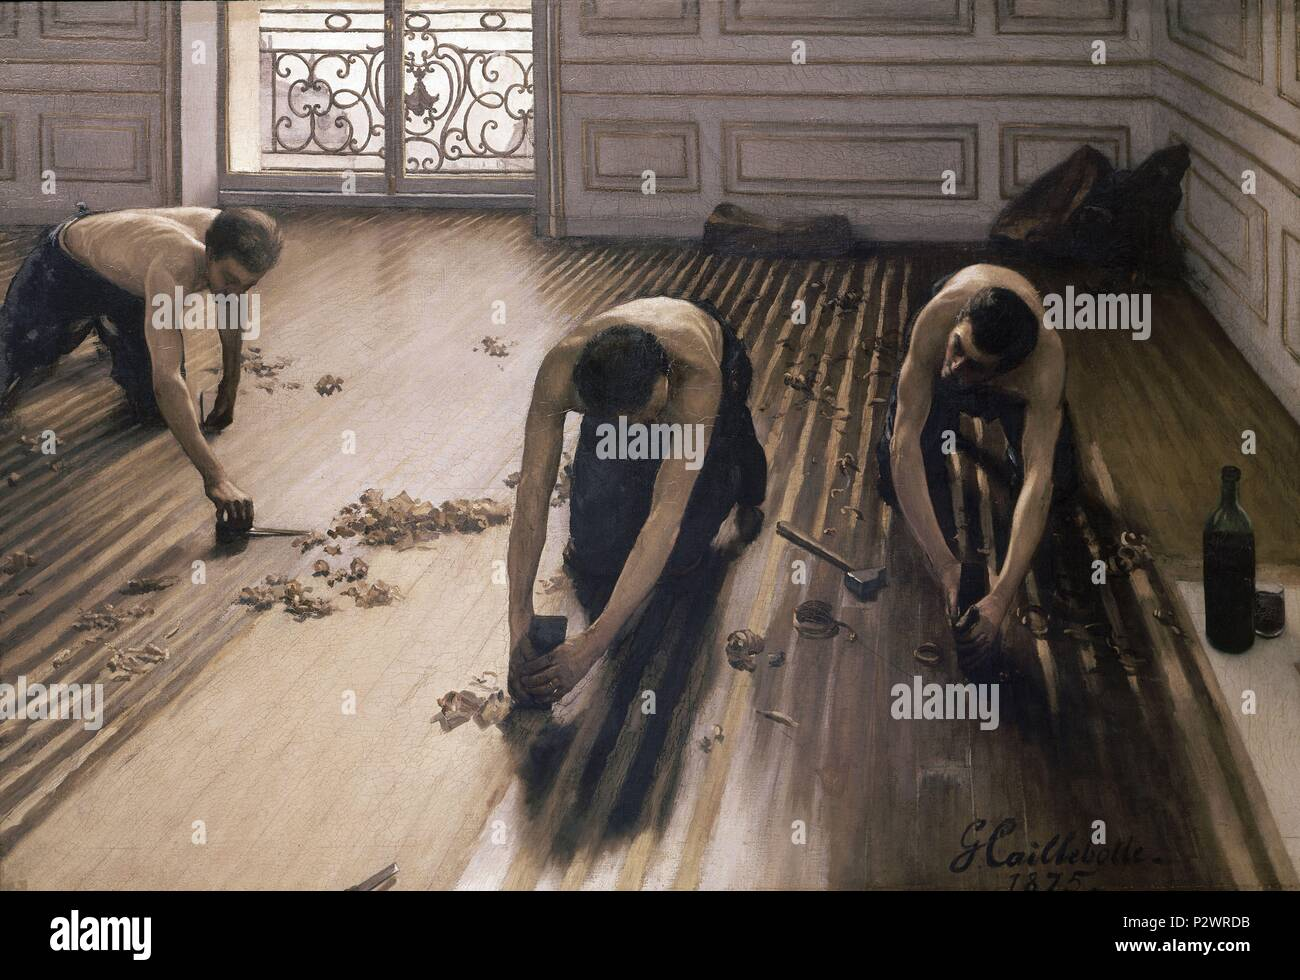 The Parquet Planers - 1875 - 102x146 cm - oil on canvas. Author: Gustave Caillebotte (1848-1894). Location: MUSEE D'ORSAY, FRANCE. Also known as: ACUCHILLADORES DE PARQUET. - Stock Image